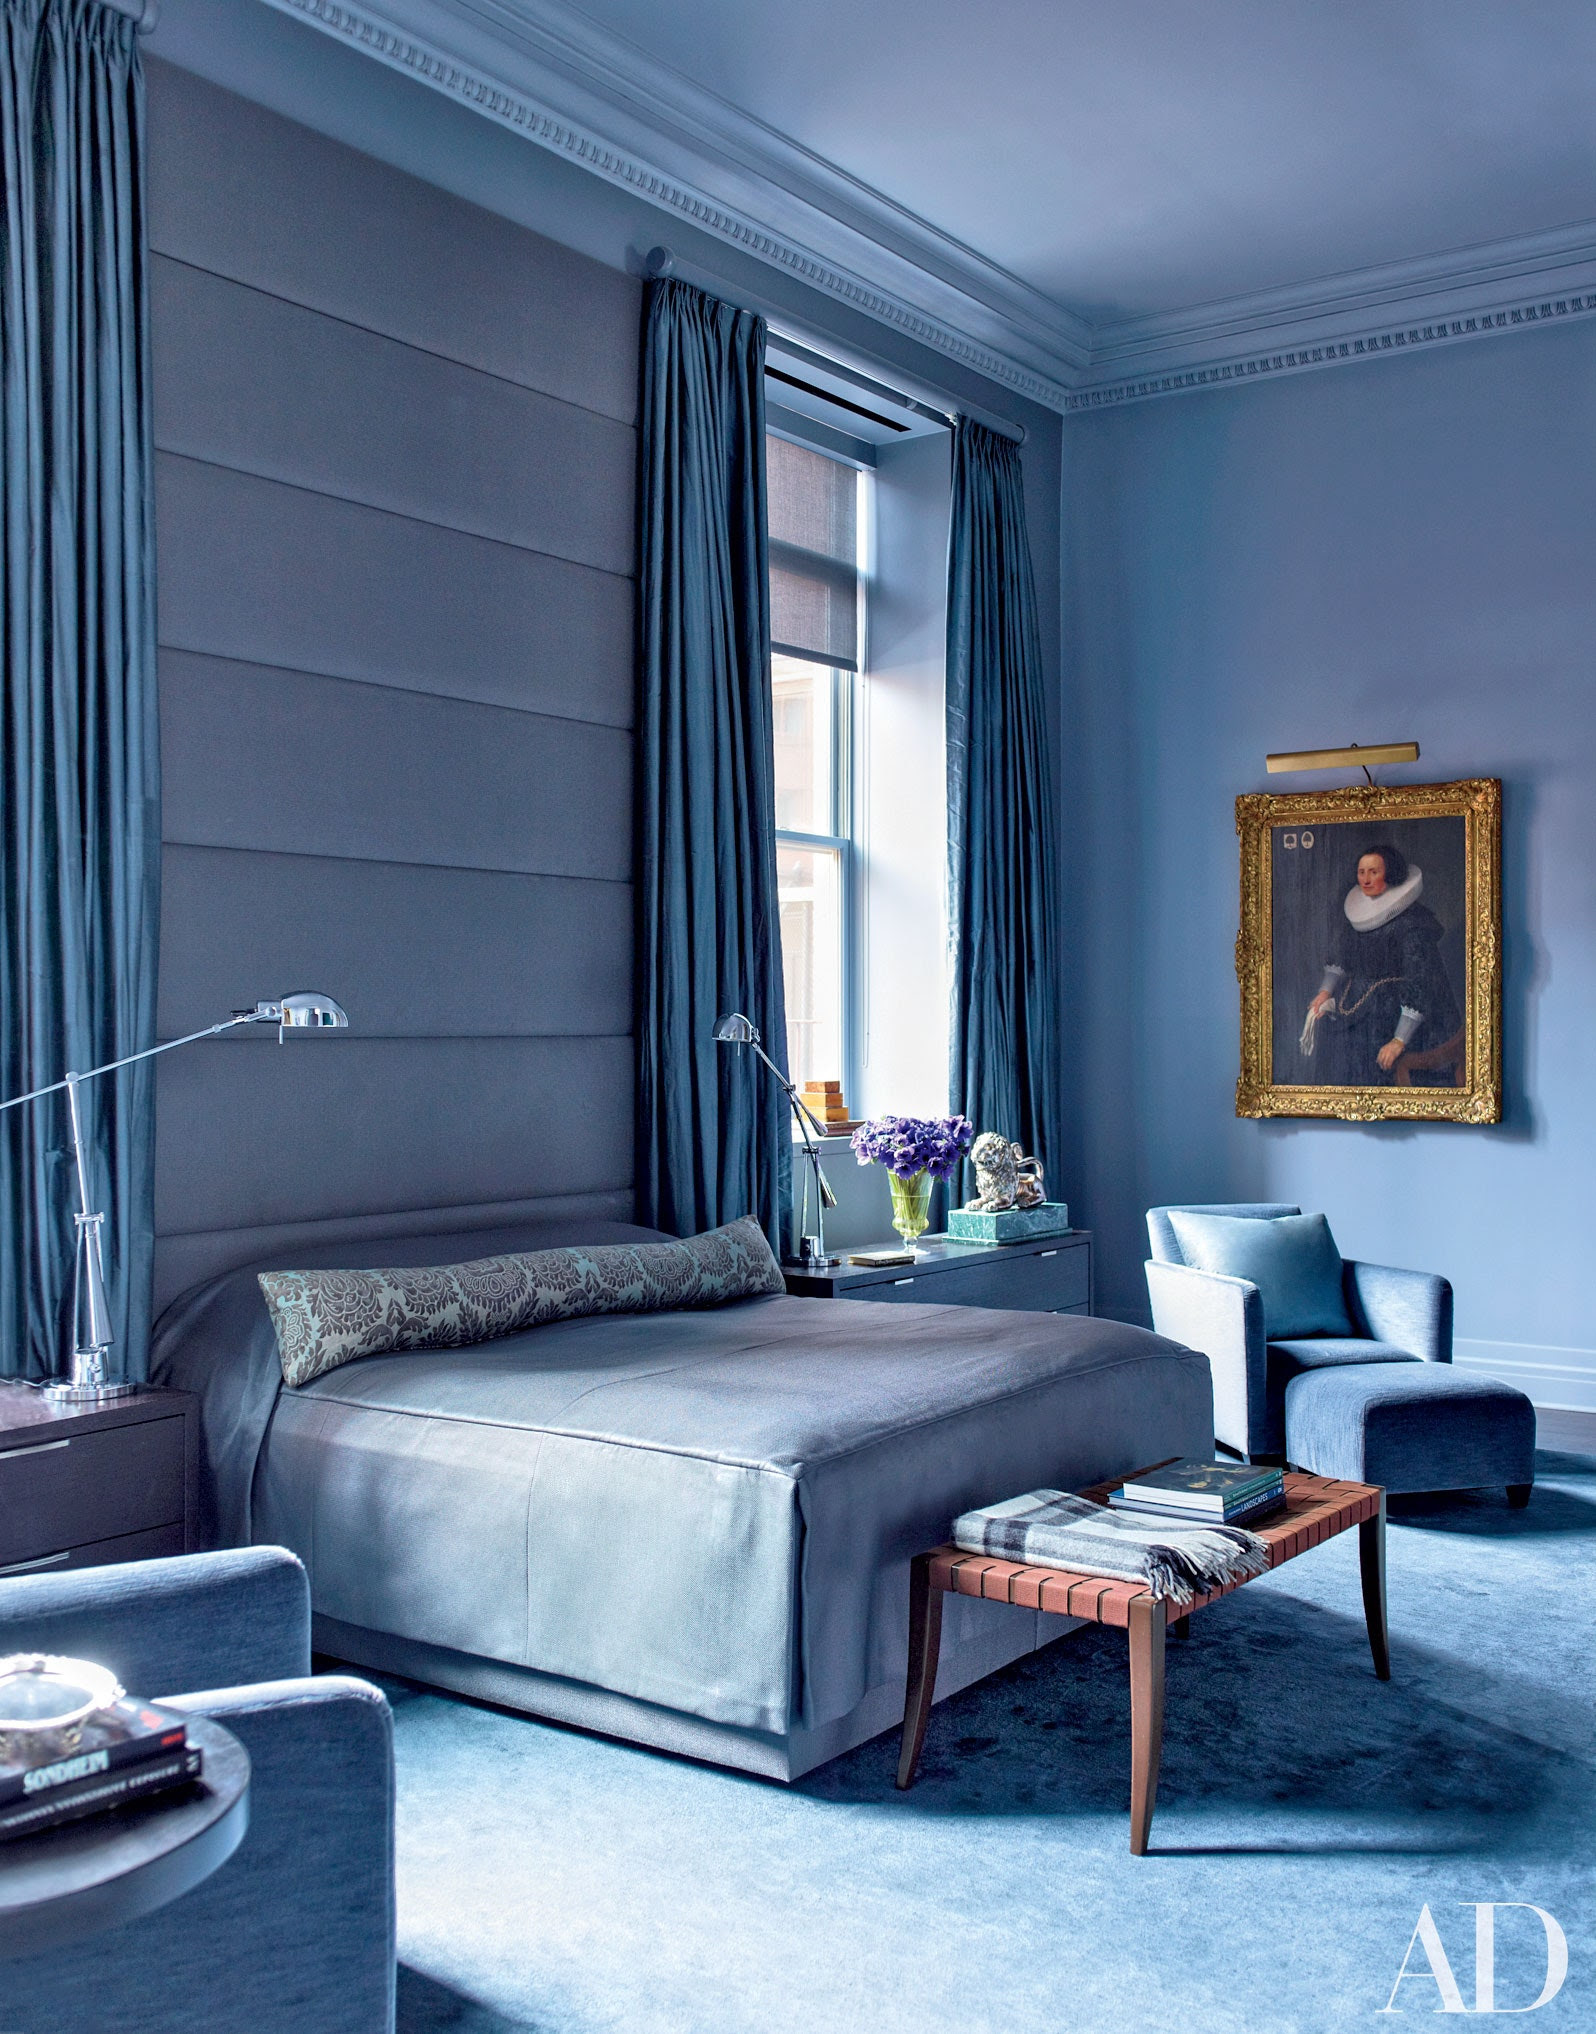 12 Stunning iBedroomi Paint Ideas for Your Master Suite